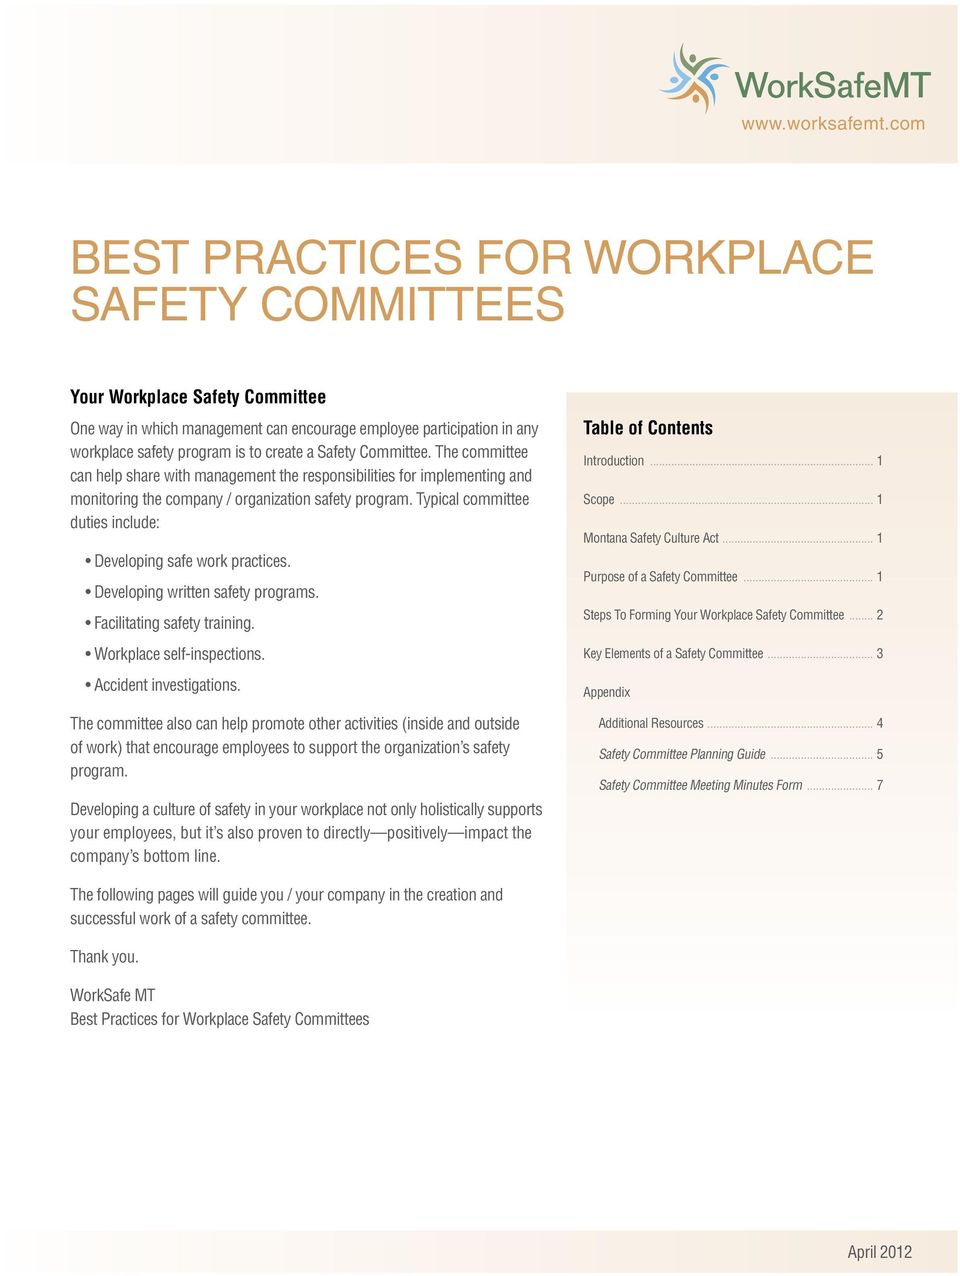 Safety Committee. The committee can help share with management the responsibilities for implementing and monitoring the company / organization safety program.